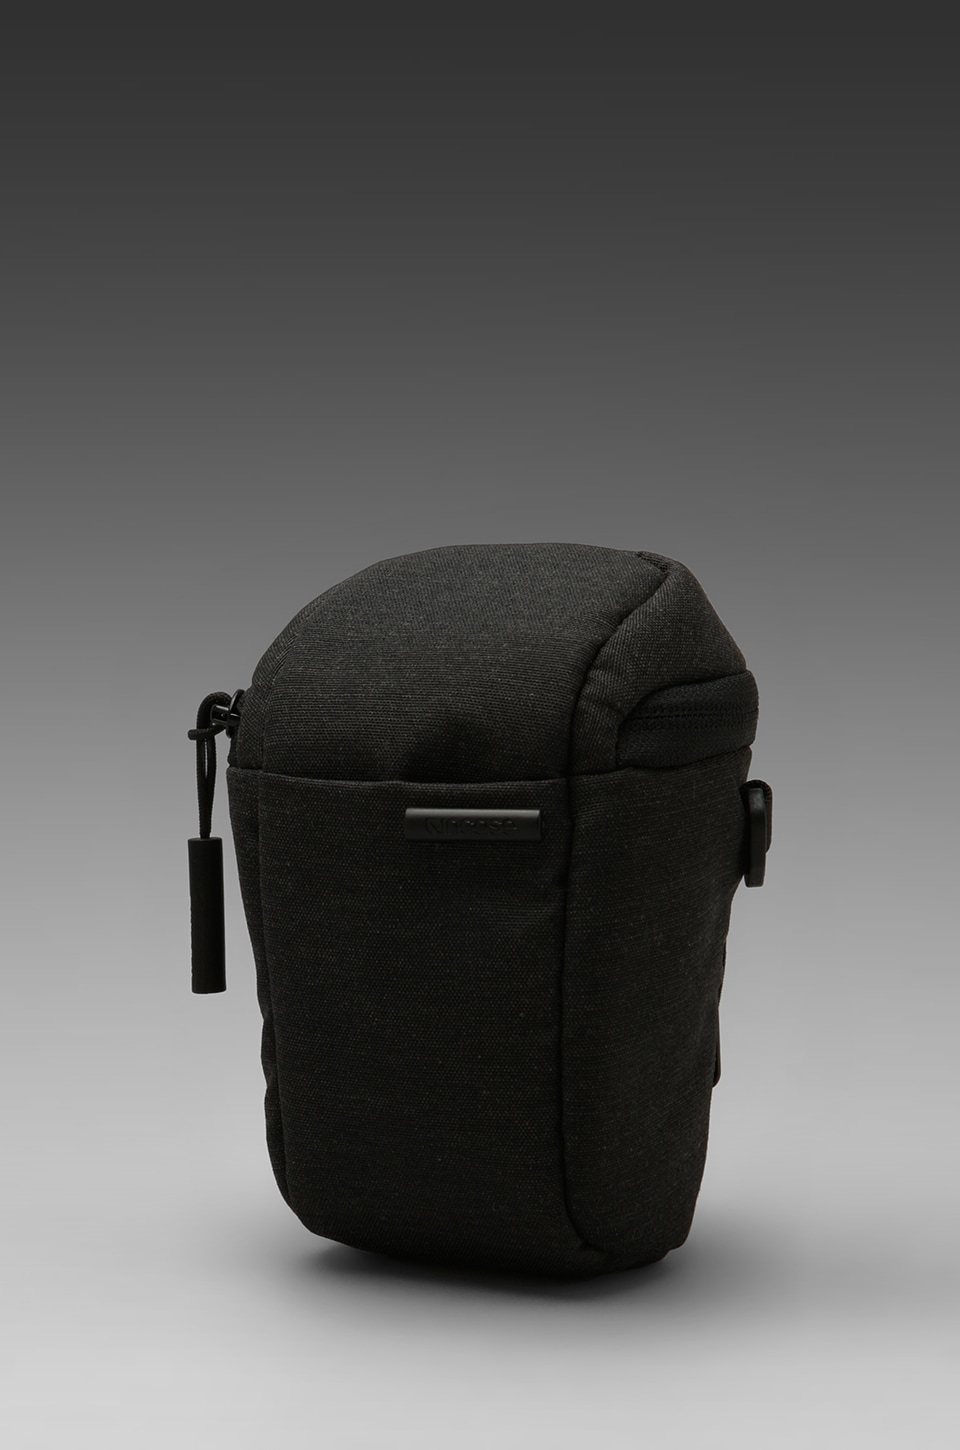 INCASE Point and Shoot Camera Bag in Black